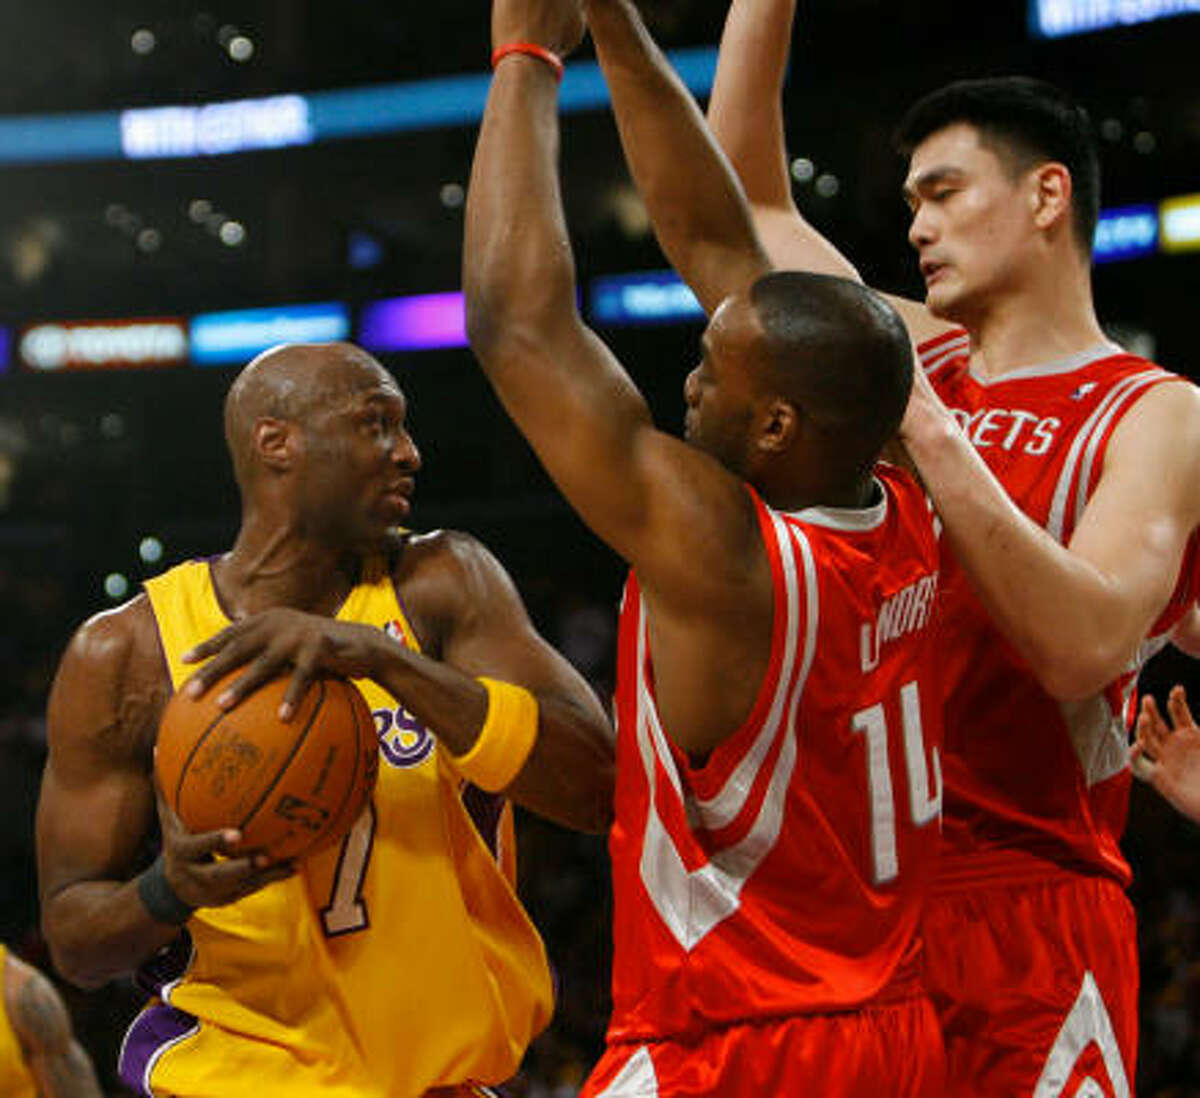 Lakers forward Lamar Odom (left) had trouble scoring against Rockets forward Carl Landry (14) and center Yao Ming in the third quarter of Game 1.